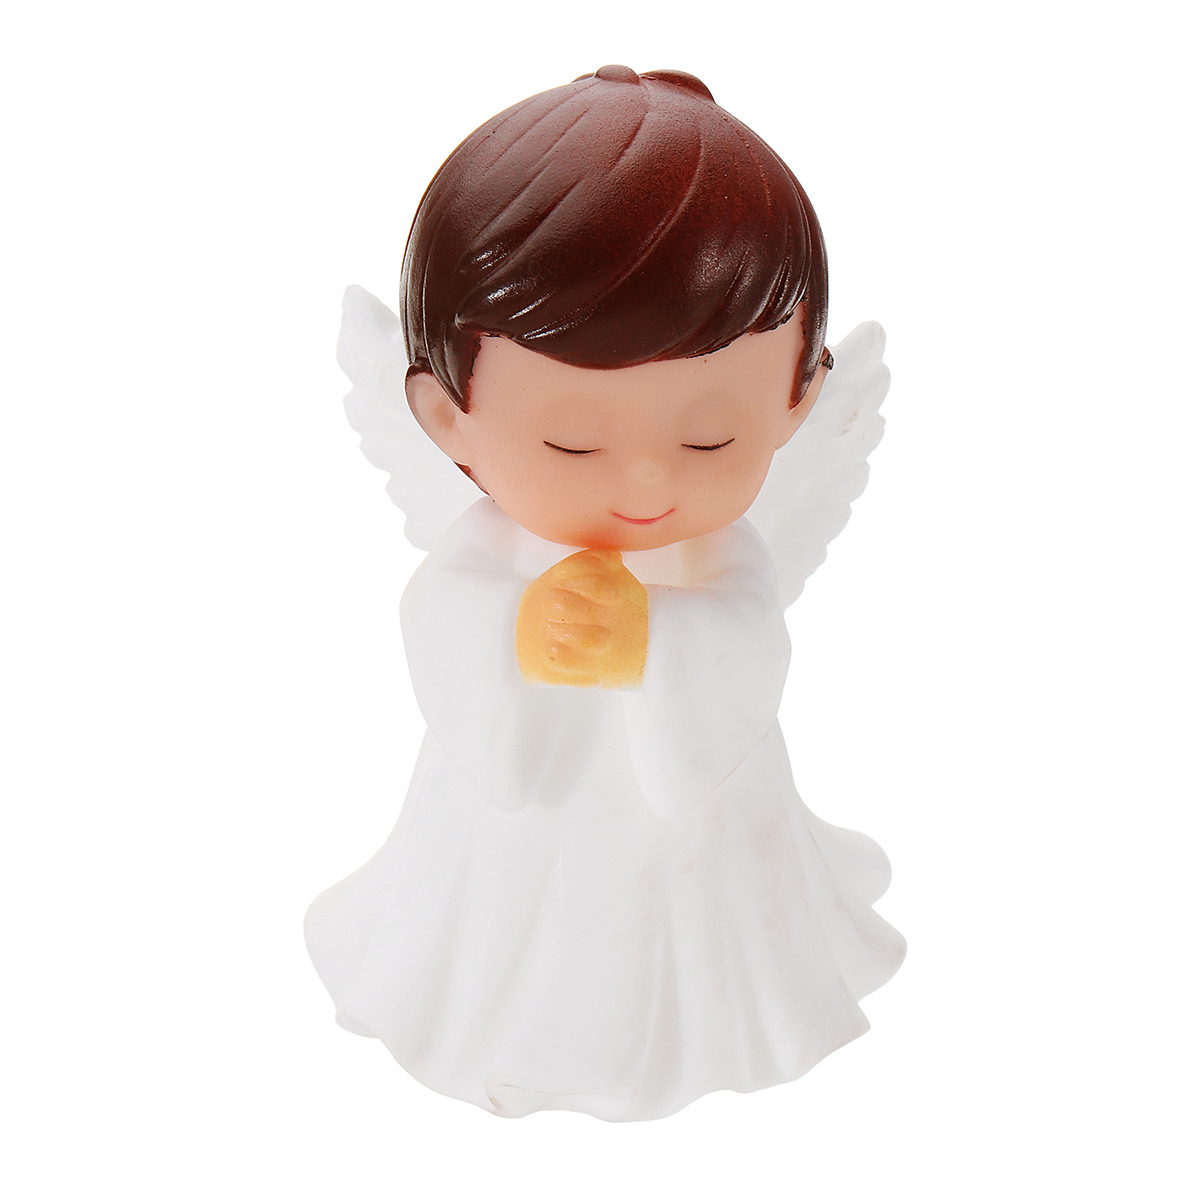 Angels DIY Cake Topper Decor Birthday Valentine's Day Party Romantic Mini Cute Decorations